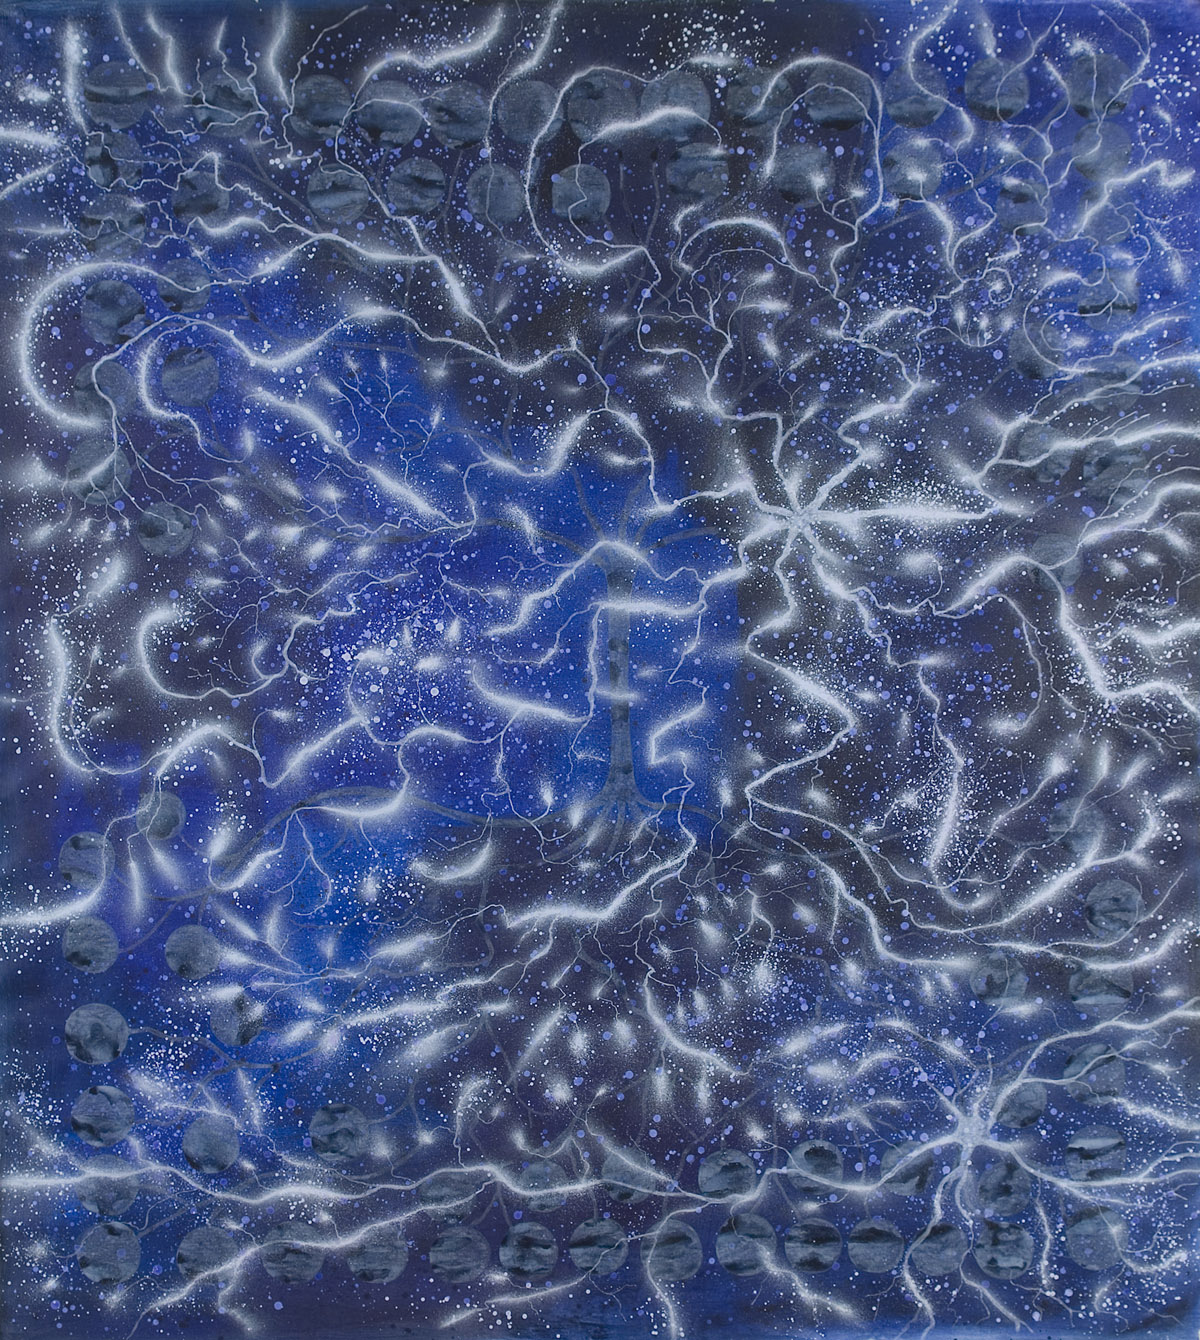 Sinestesia, 2007, acrylic on canvas, cm 220 x 200